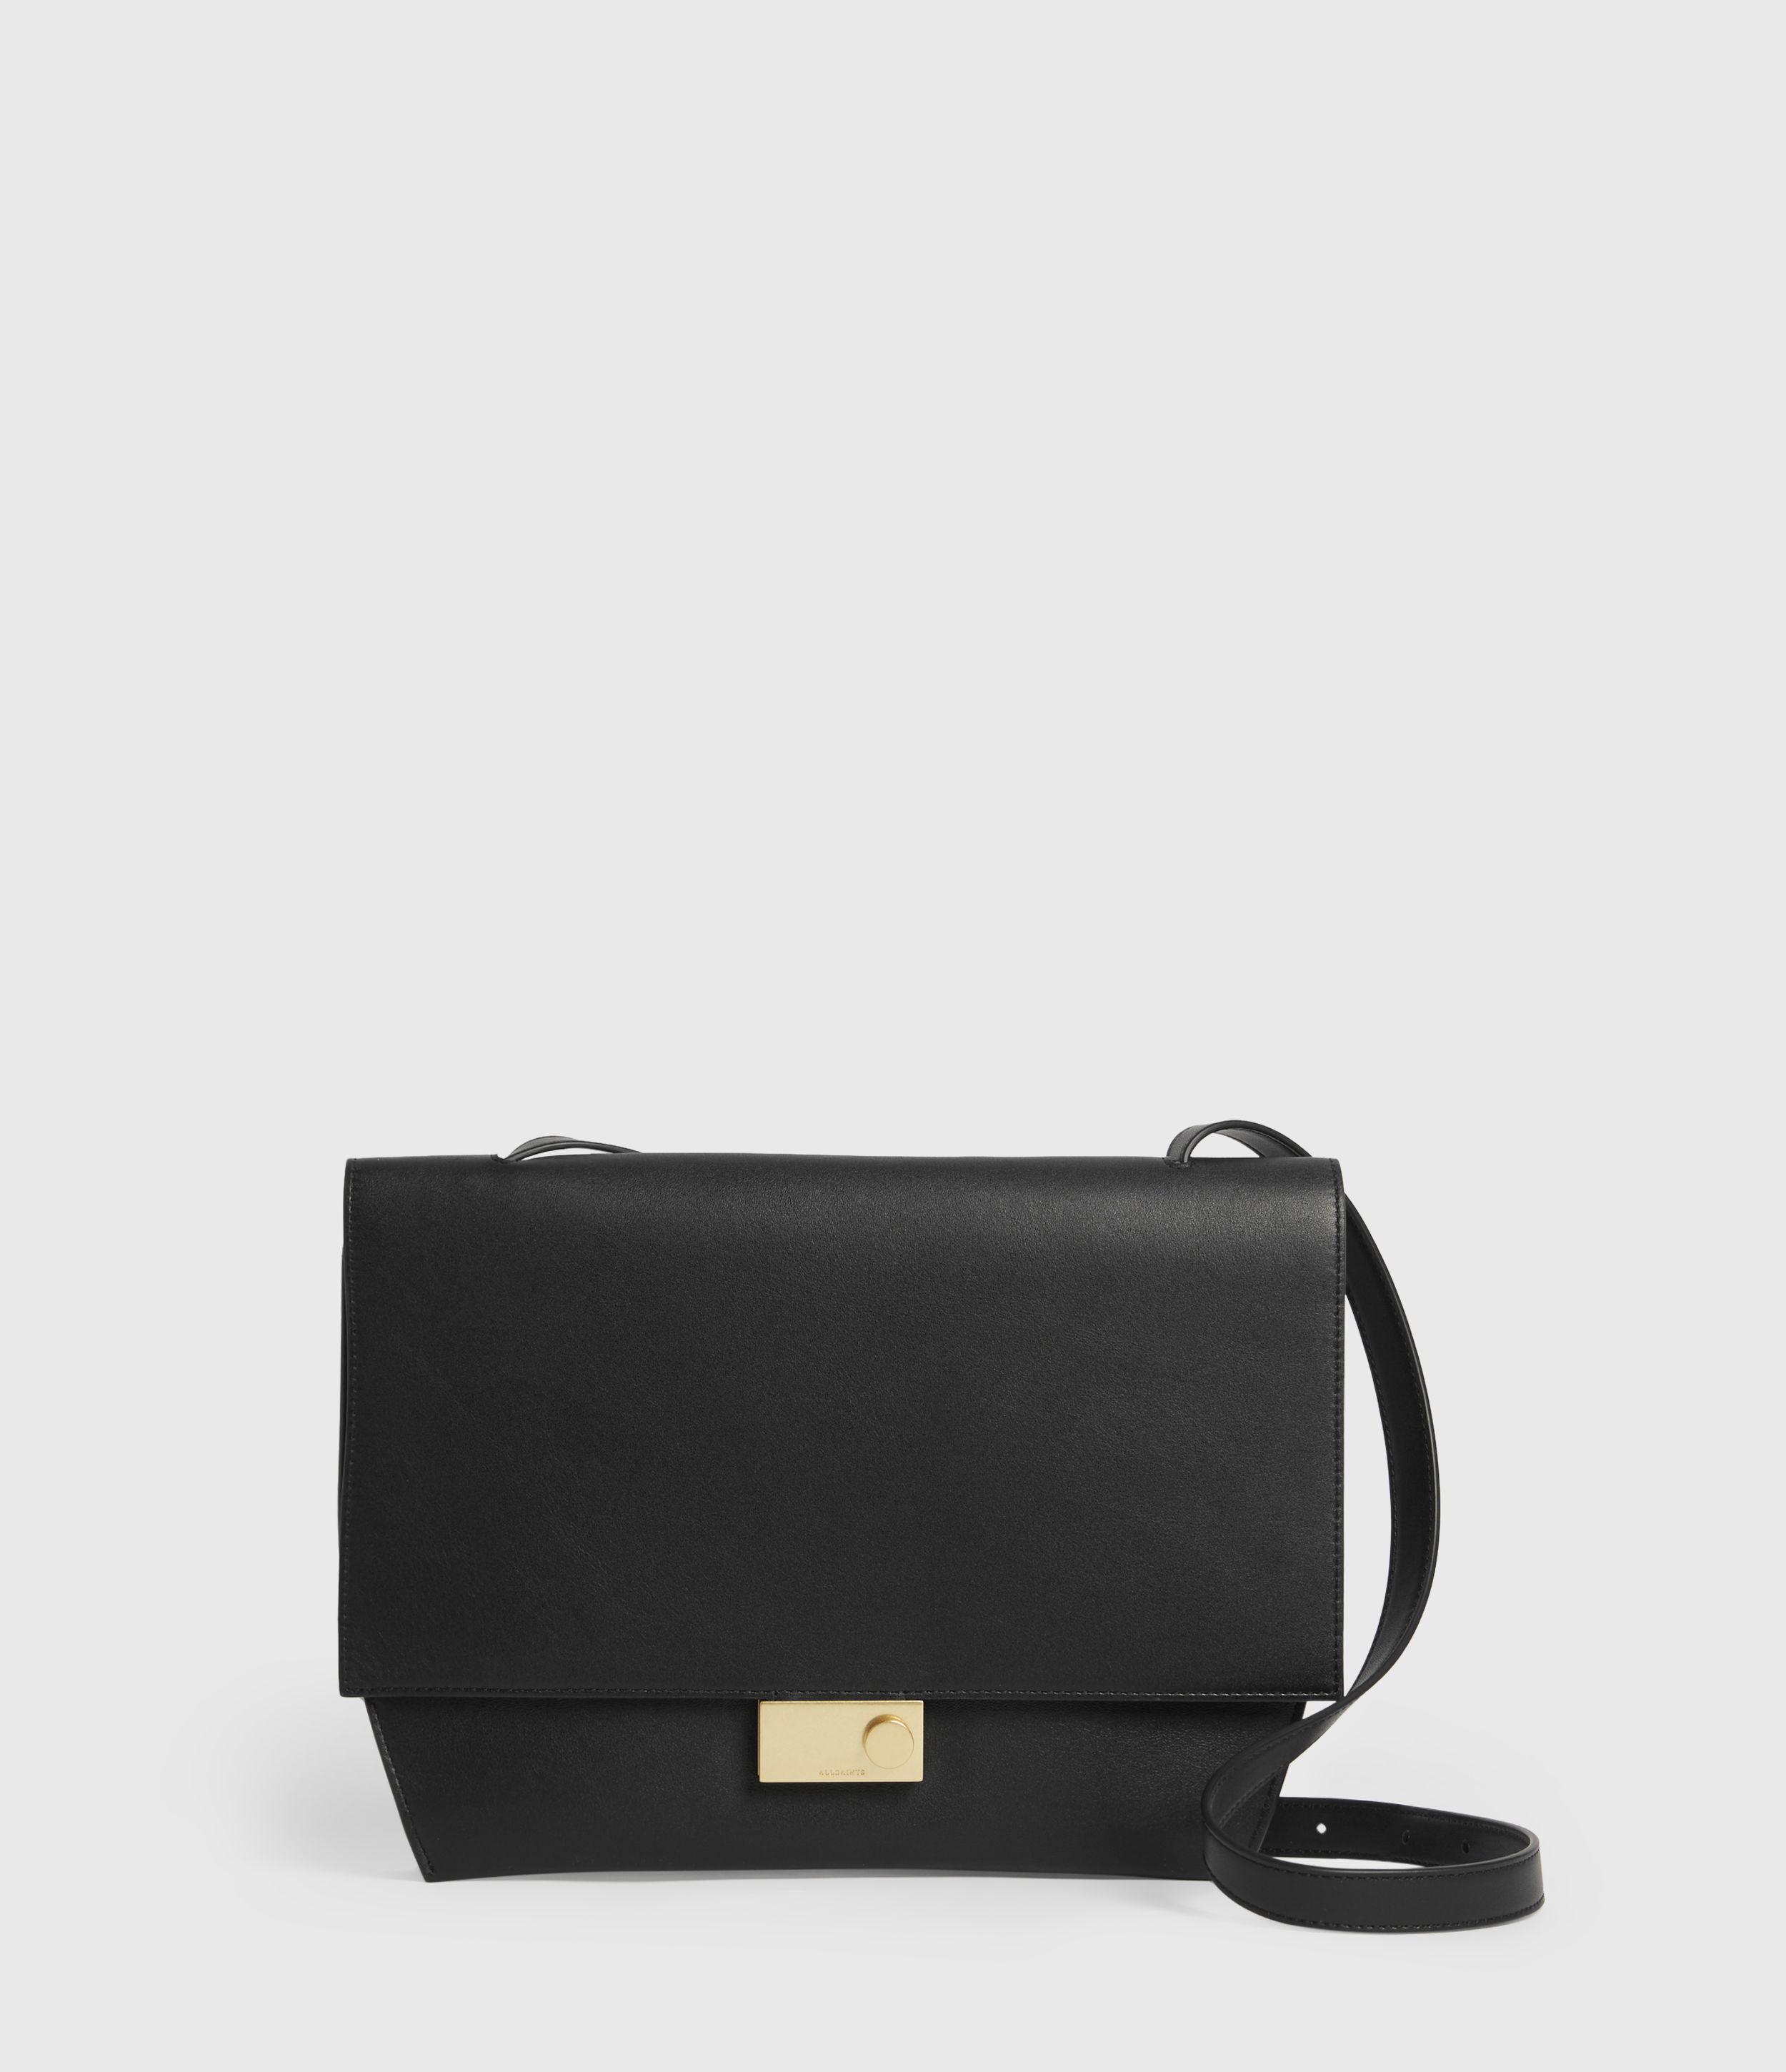 Allsaints CHARTERHOUSE LEATHER SHOULDER BAG